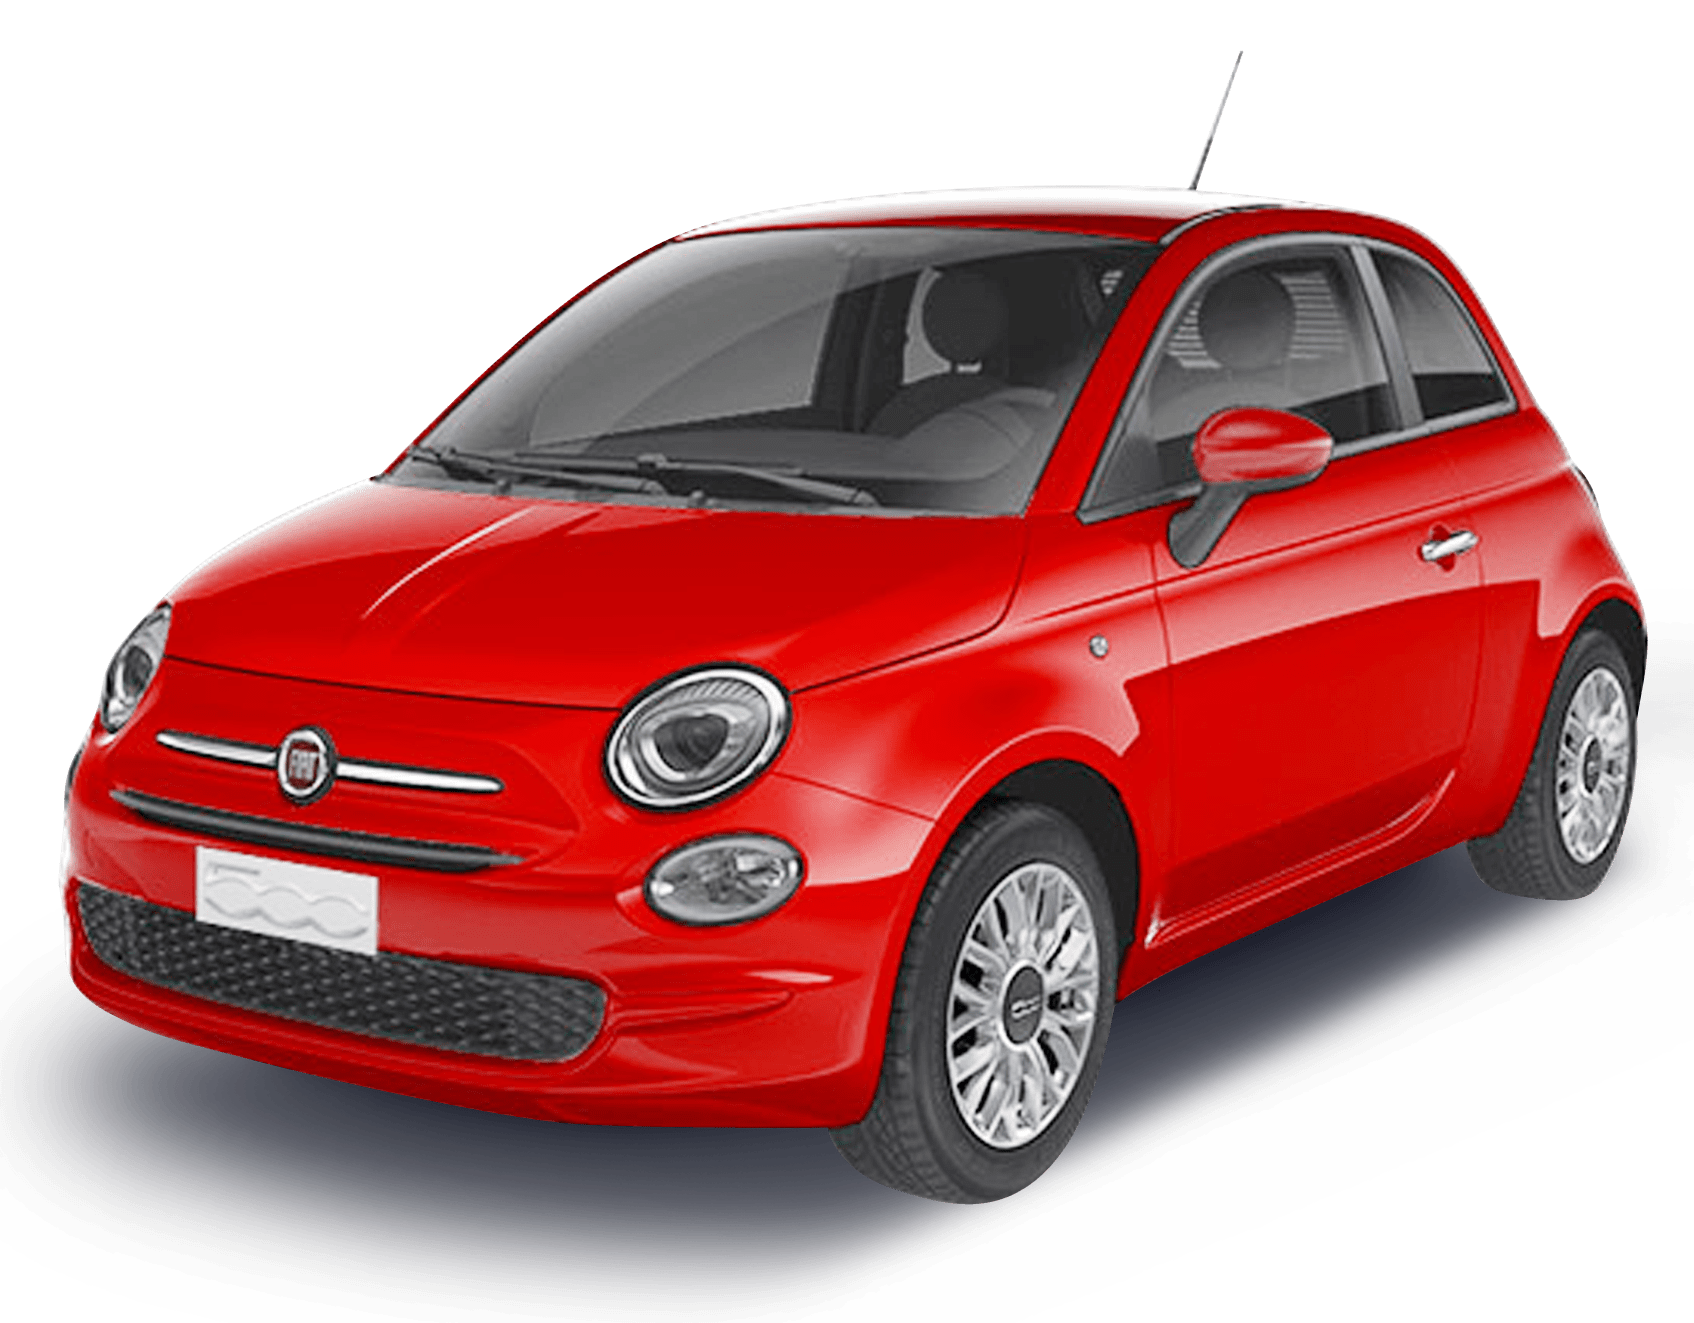 fiat 500 usa november 2009 fiat 500 prima edizione going on sale in canada fiat 500 usa 2016. Black Bedroom Furniture Sets. Home Design Ideas